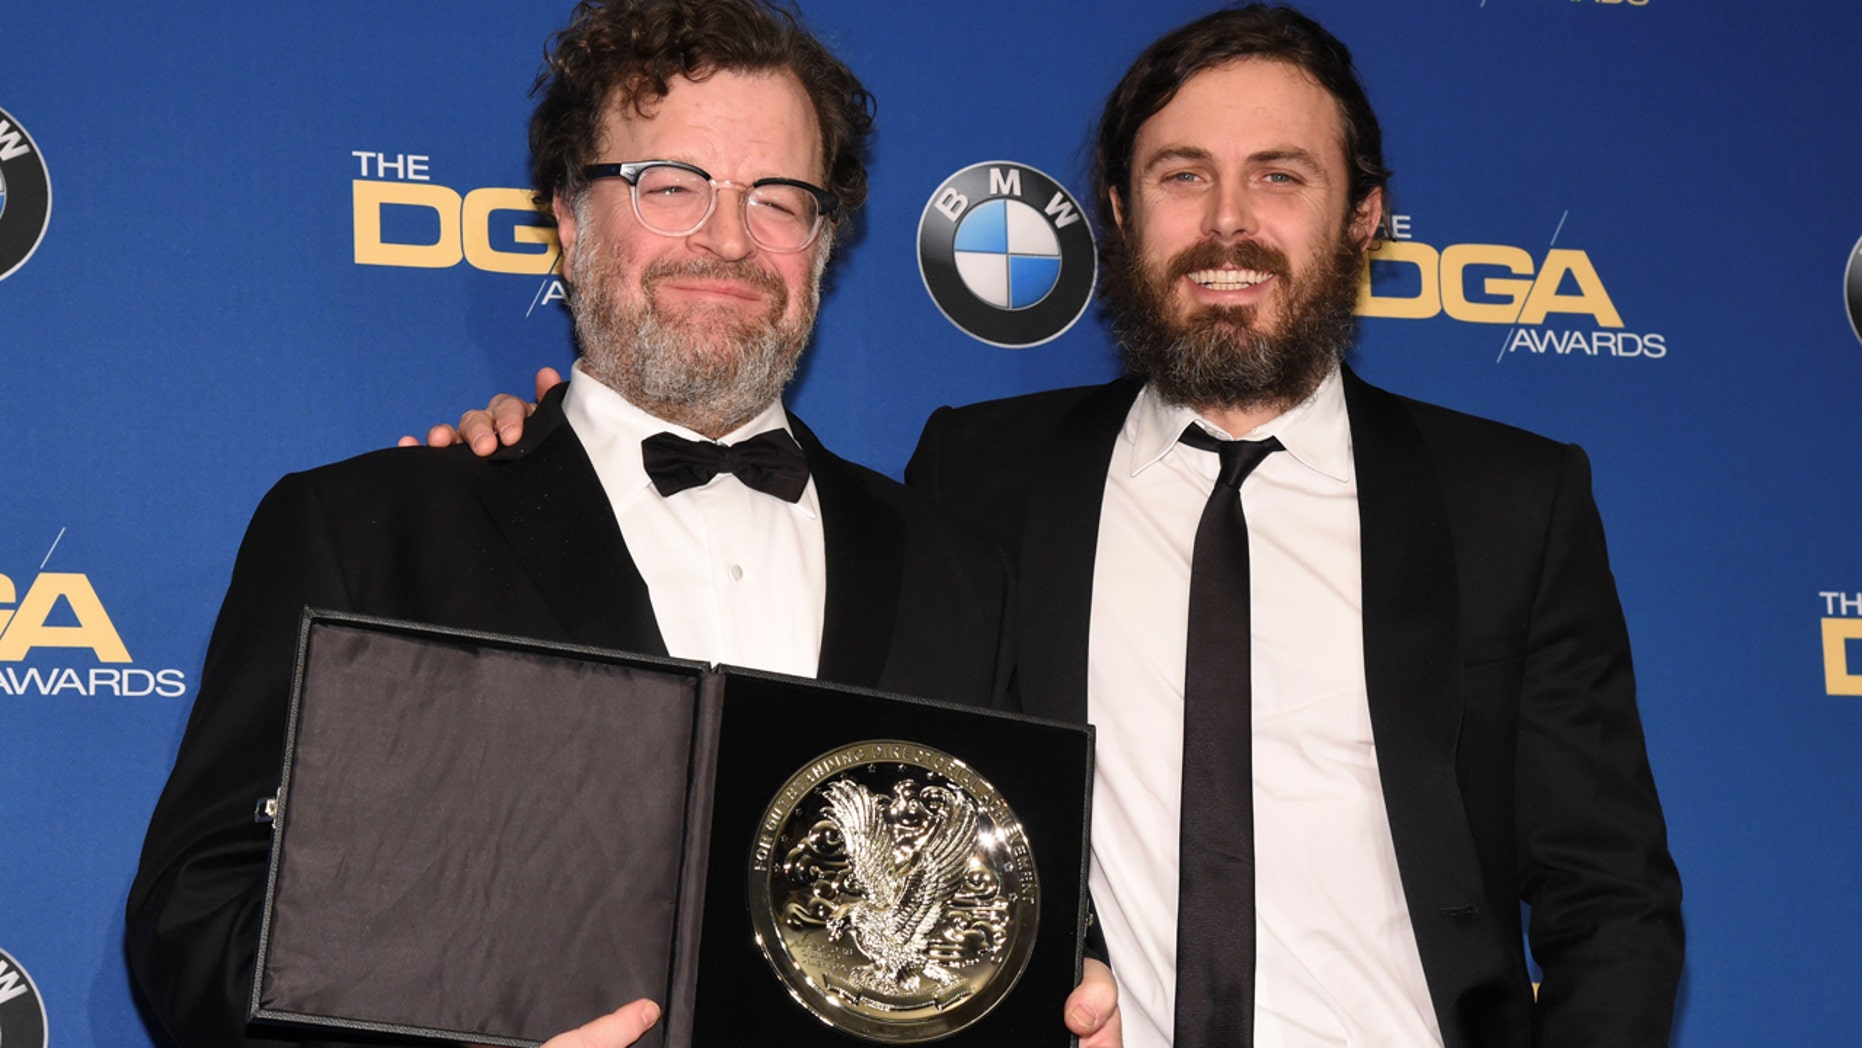 Feature Film Award nominee, Kenneth Lonergan, left, poses for photographers with Casey Affleck, right, at the 69th annual DGA Awards in Beverly Hills, Cali., on February 4, 2017.